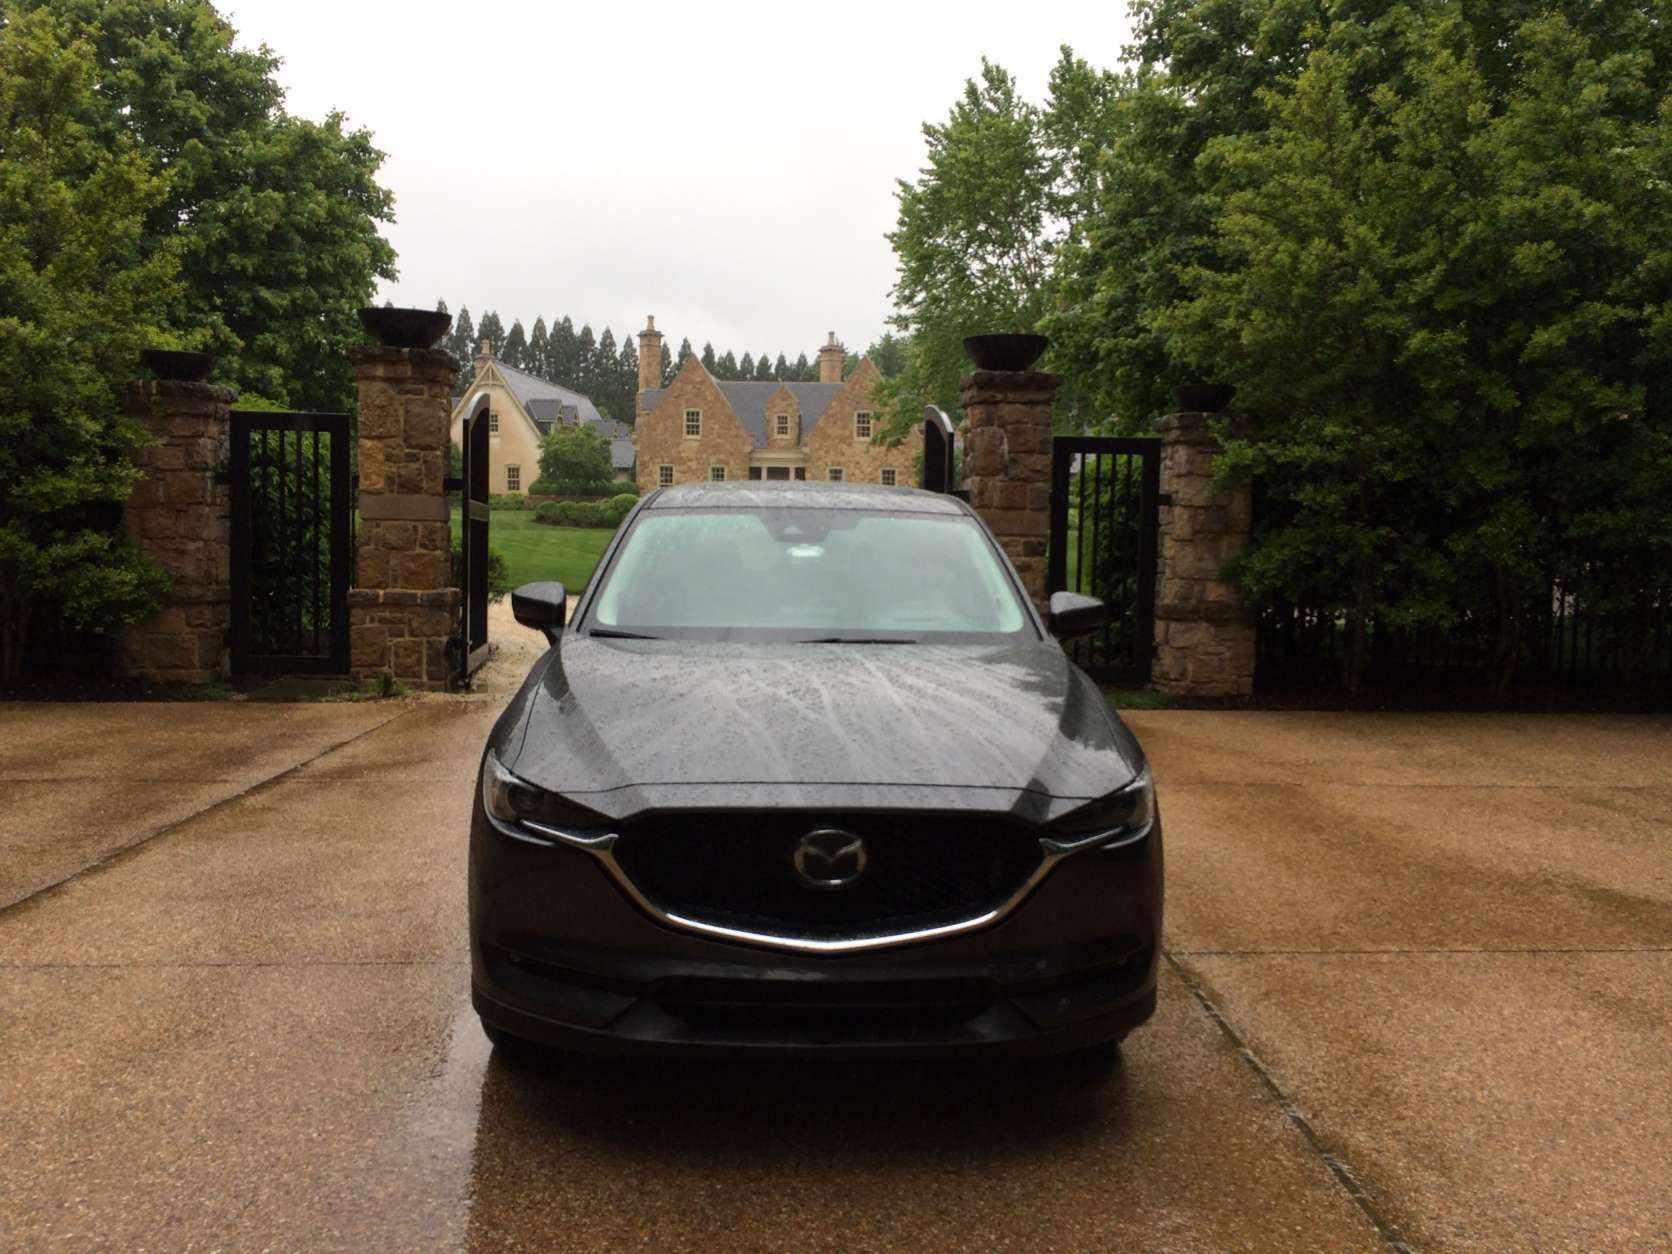 The Grand Touring model with all the options costs $34,085. Fuel economy for the AWD CX-5 is a combined 26 mpg, but Parris only managed 24.5 in 336 miles of driving. (WTOP/Mike Parris)